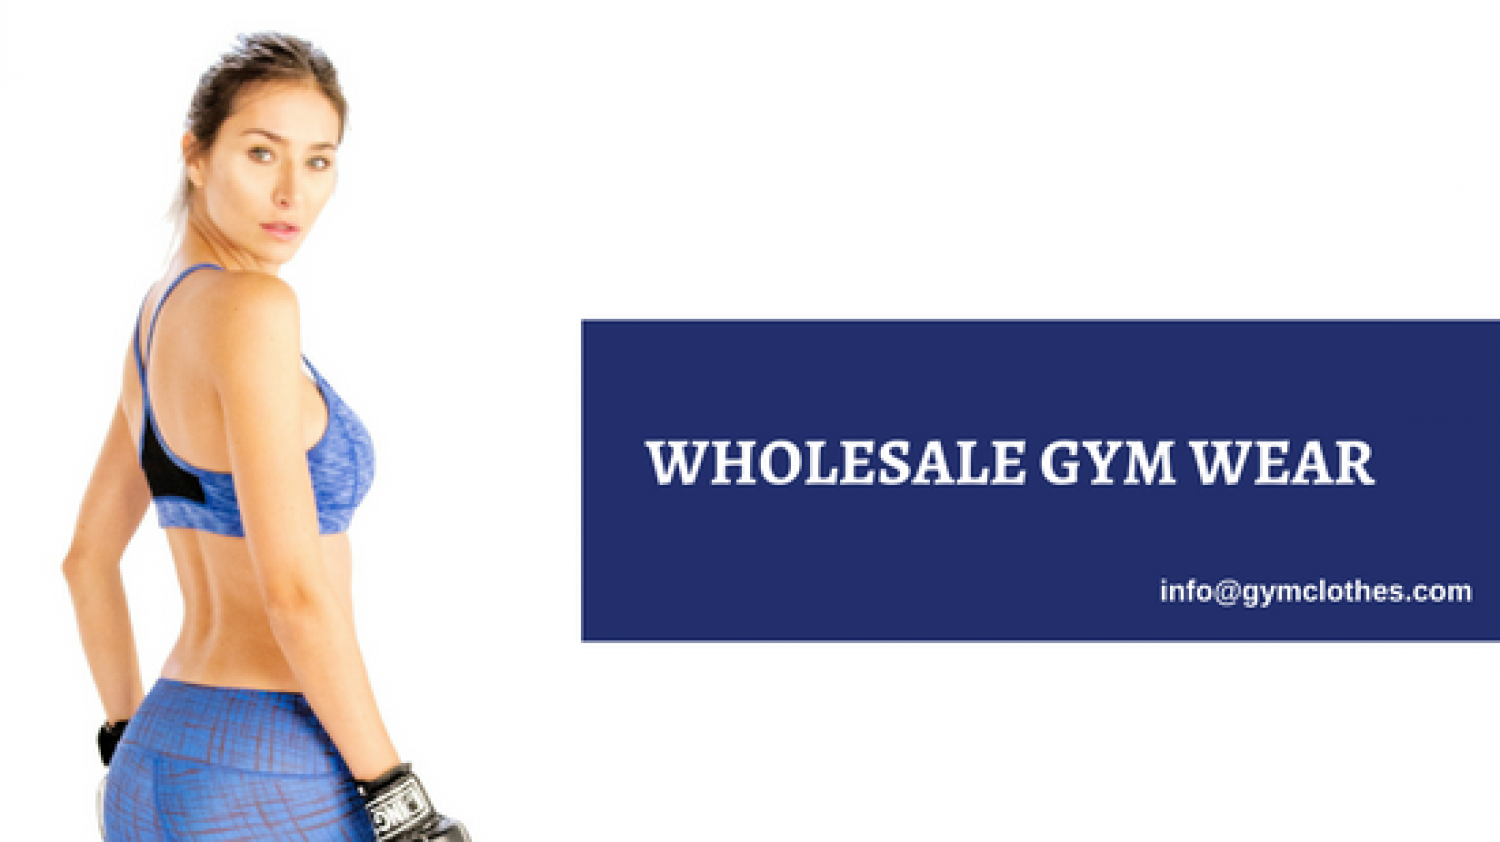 Gym Clothes Brings To You an Exclusive Range Of Wholesale Gym Wear Infographic